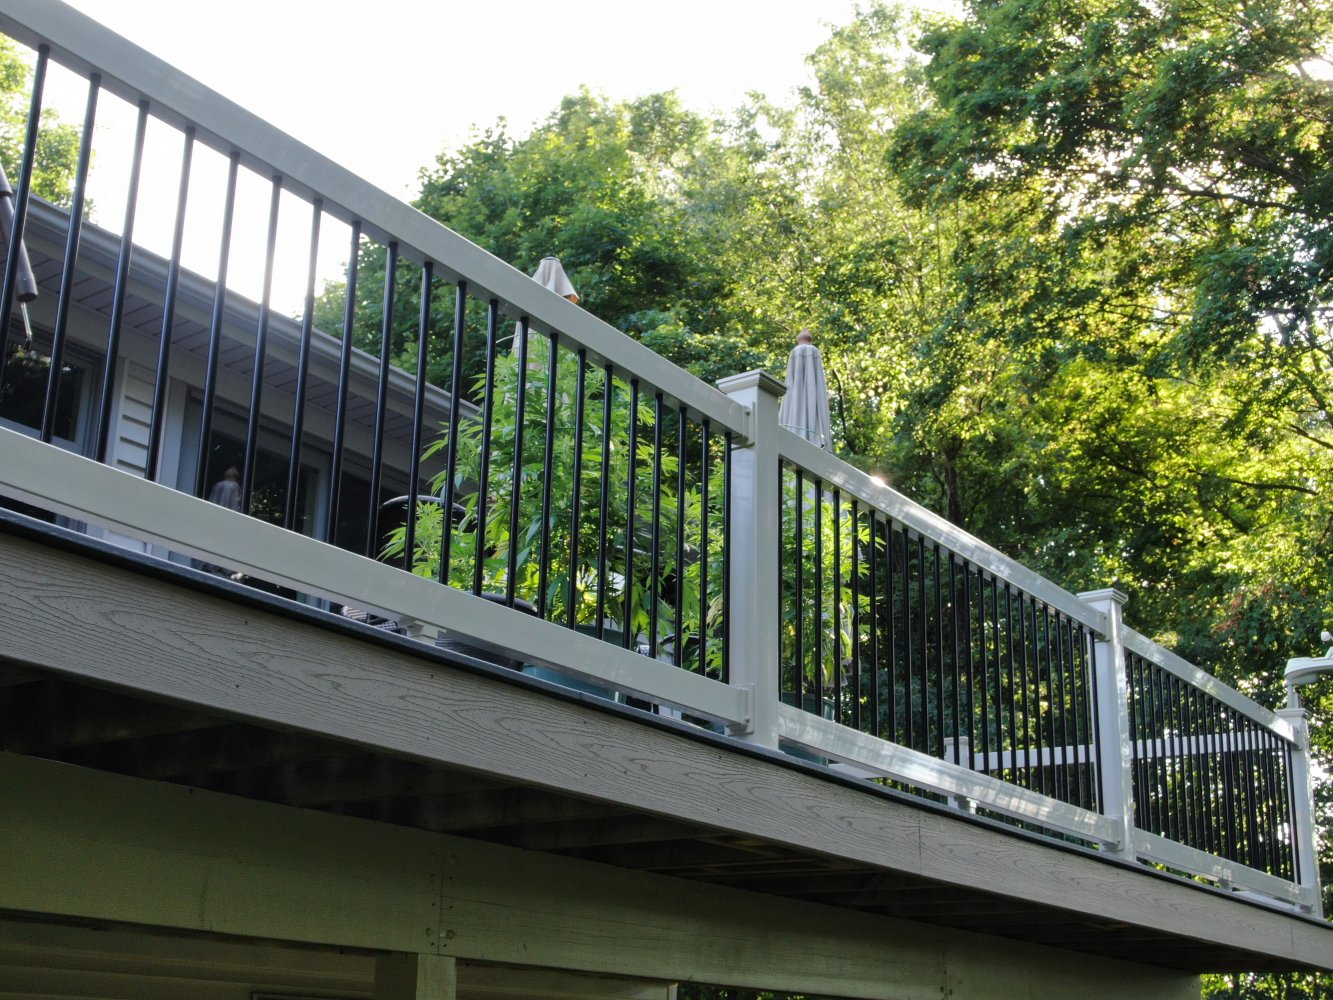 Trex-Basics-decking-and-fascia-Vinyl-rails